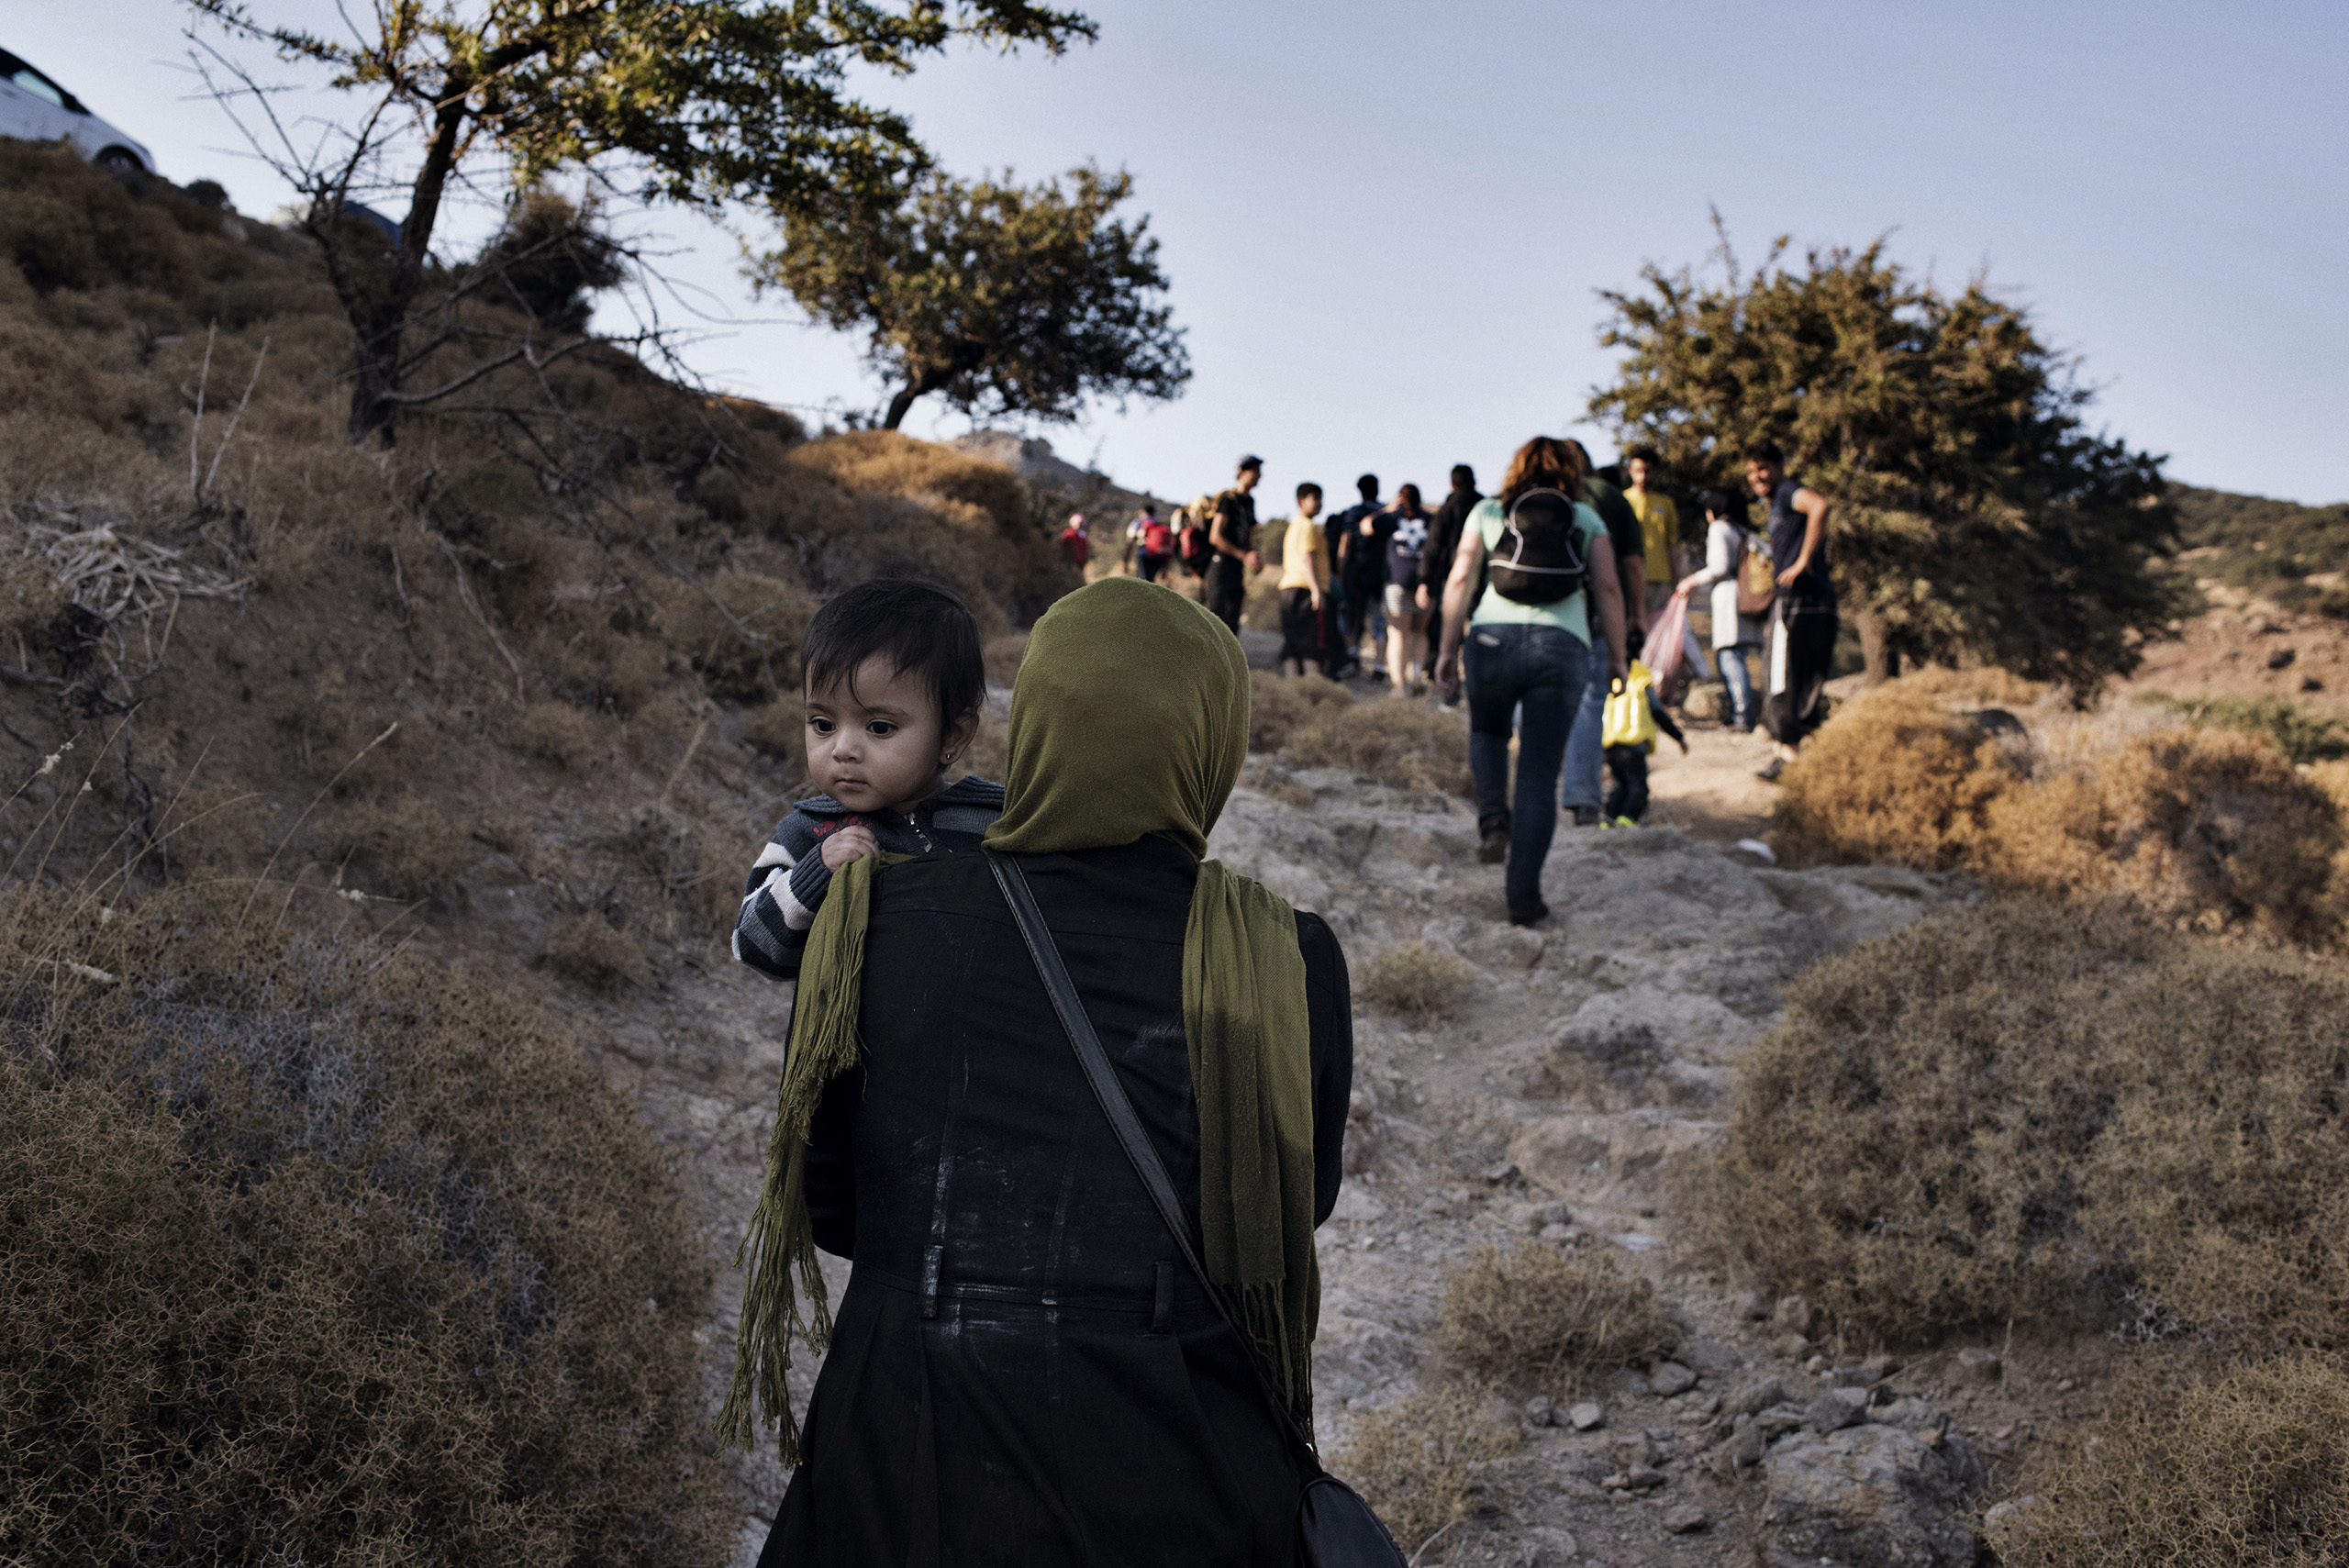 A migrant carries her child up from the beach to a road on the Greek island of Lesbos, the first piece of European land they reached after crossing from Turkey with a few dozen other migrants in an overcrowded motorboat.